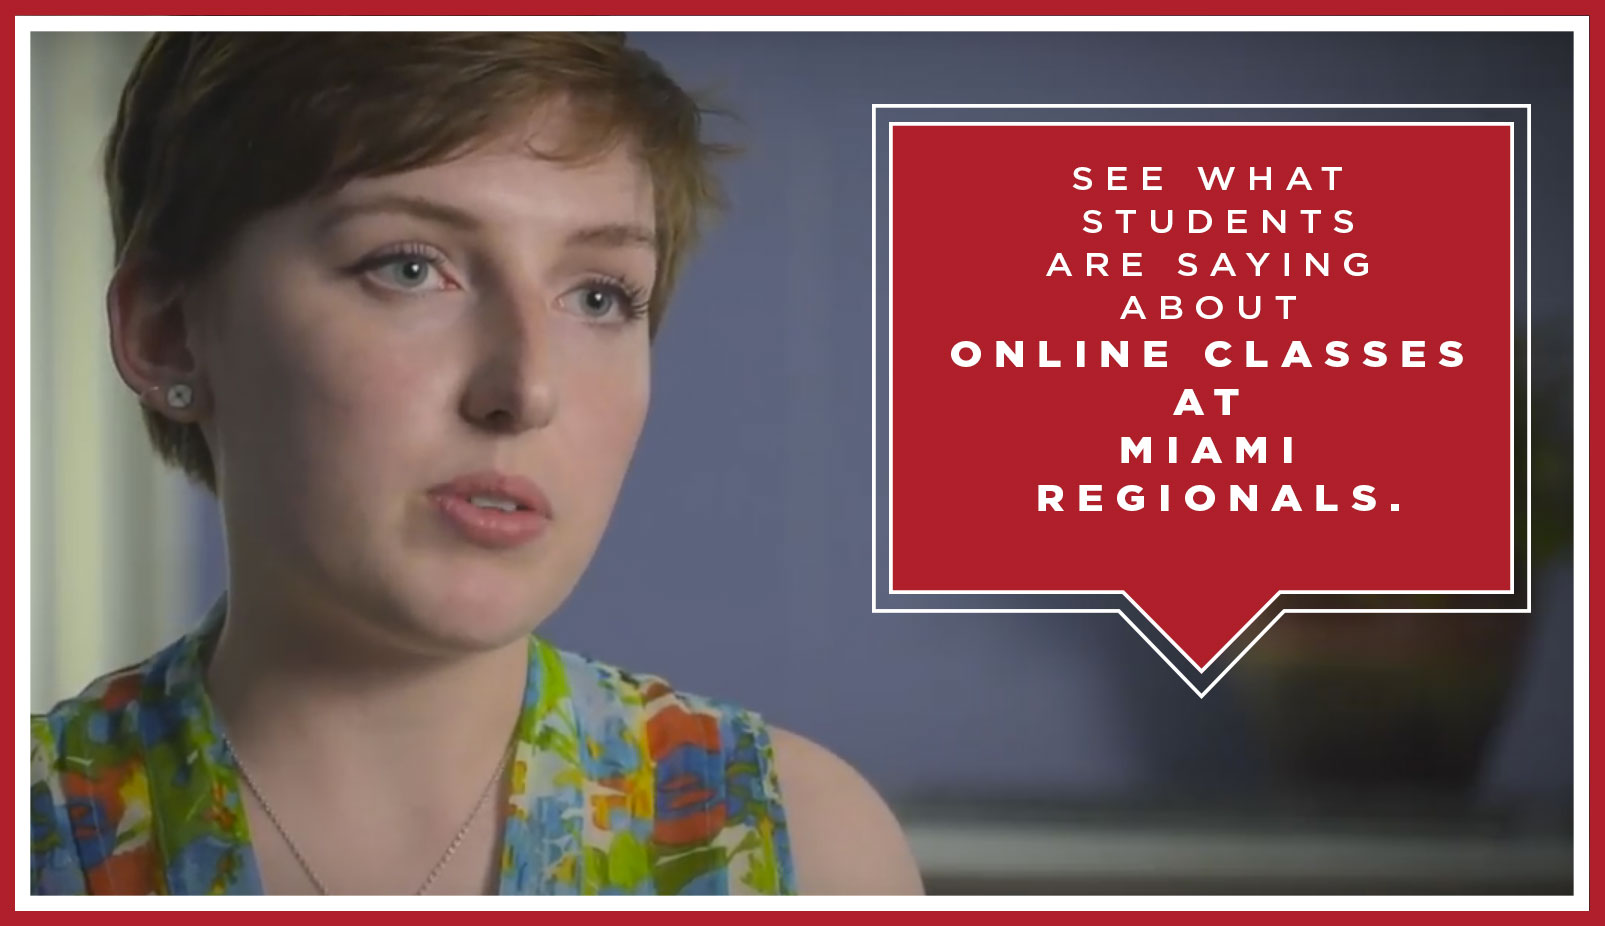 See what students are saying about online classes at Miami Regionals